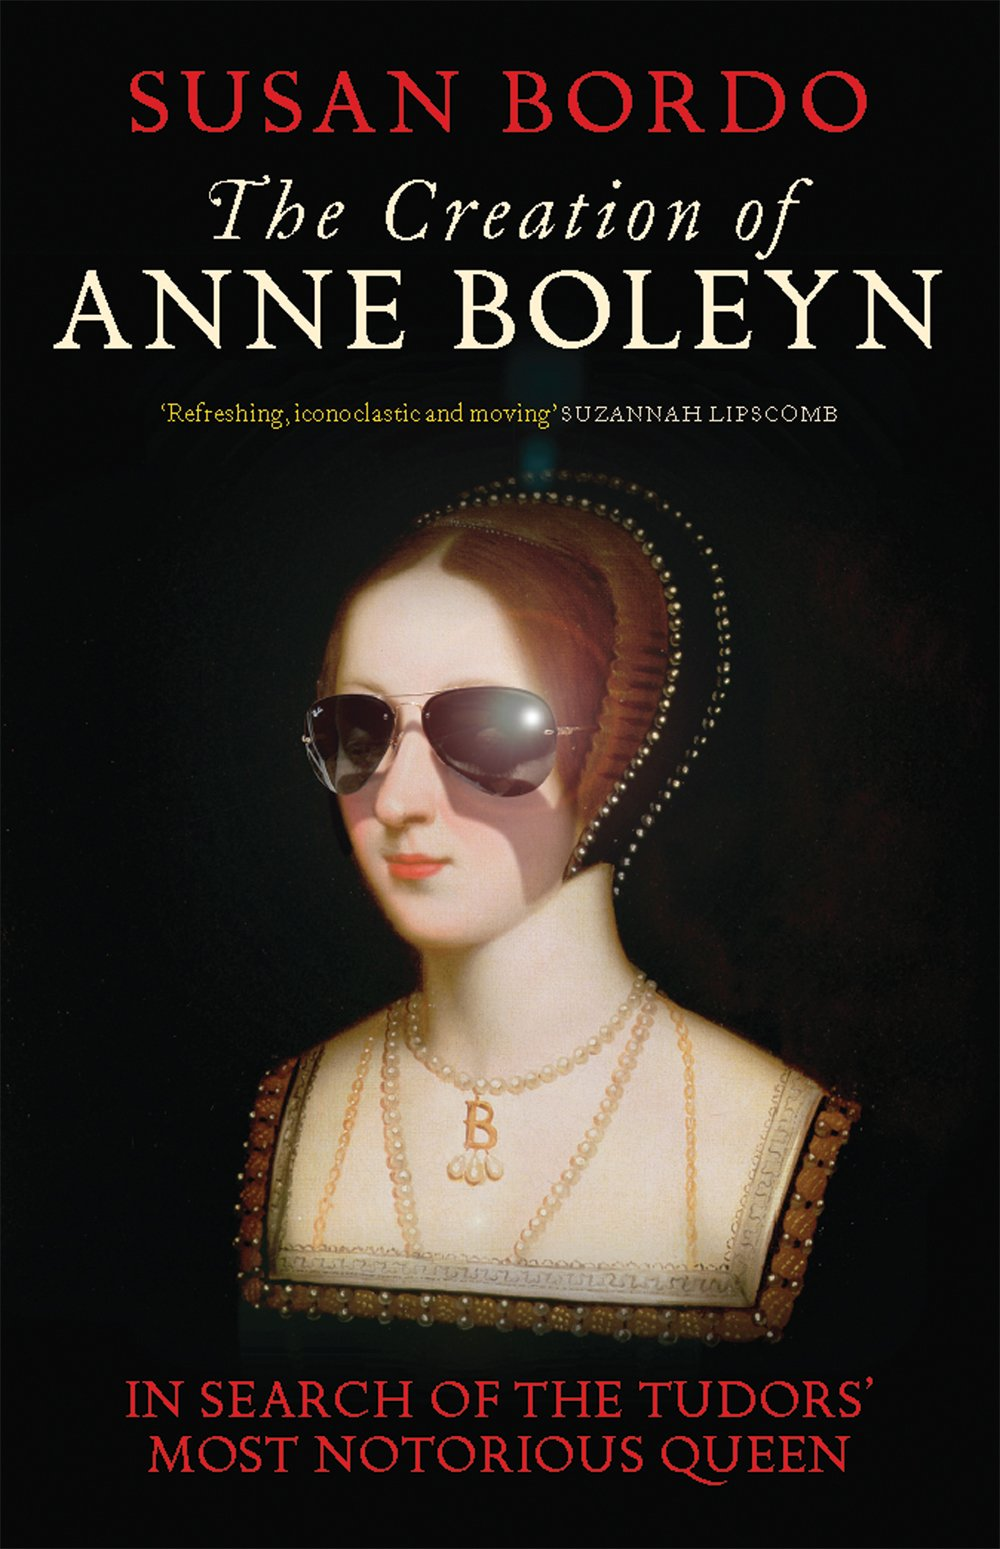 R&R RECOMMENDATION: The Creation of Anne Boleyn (2014) by Susan Bordo